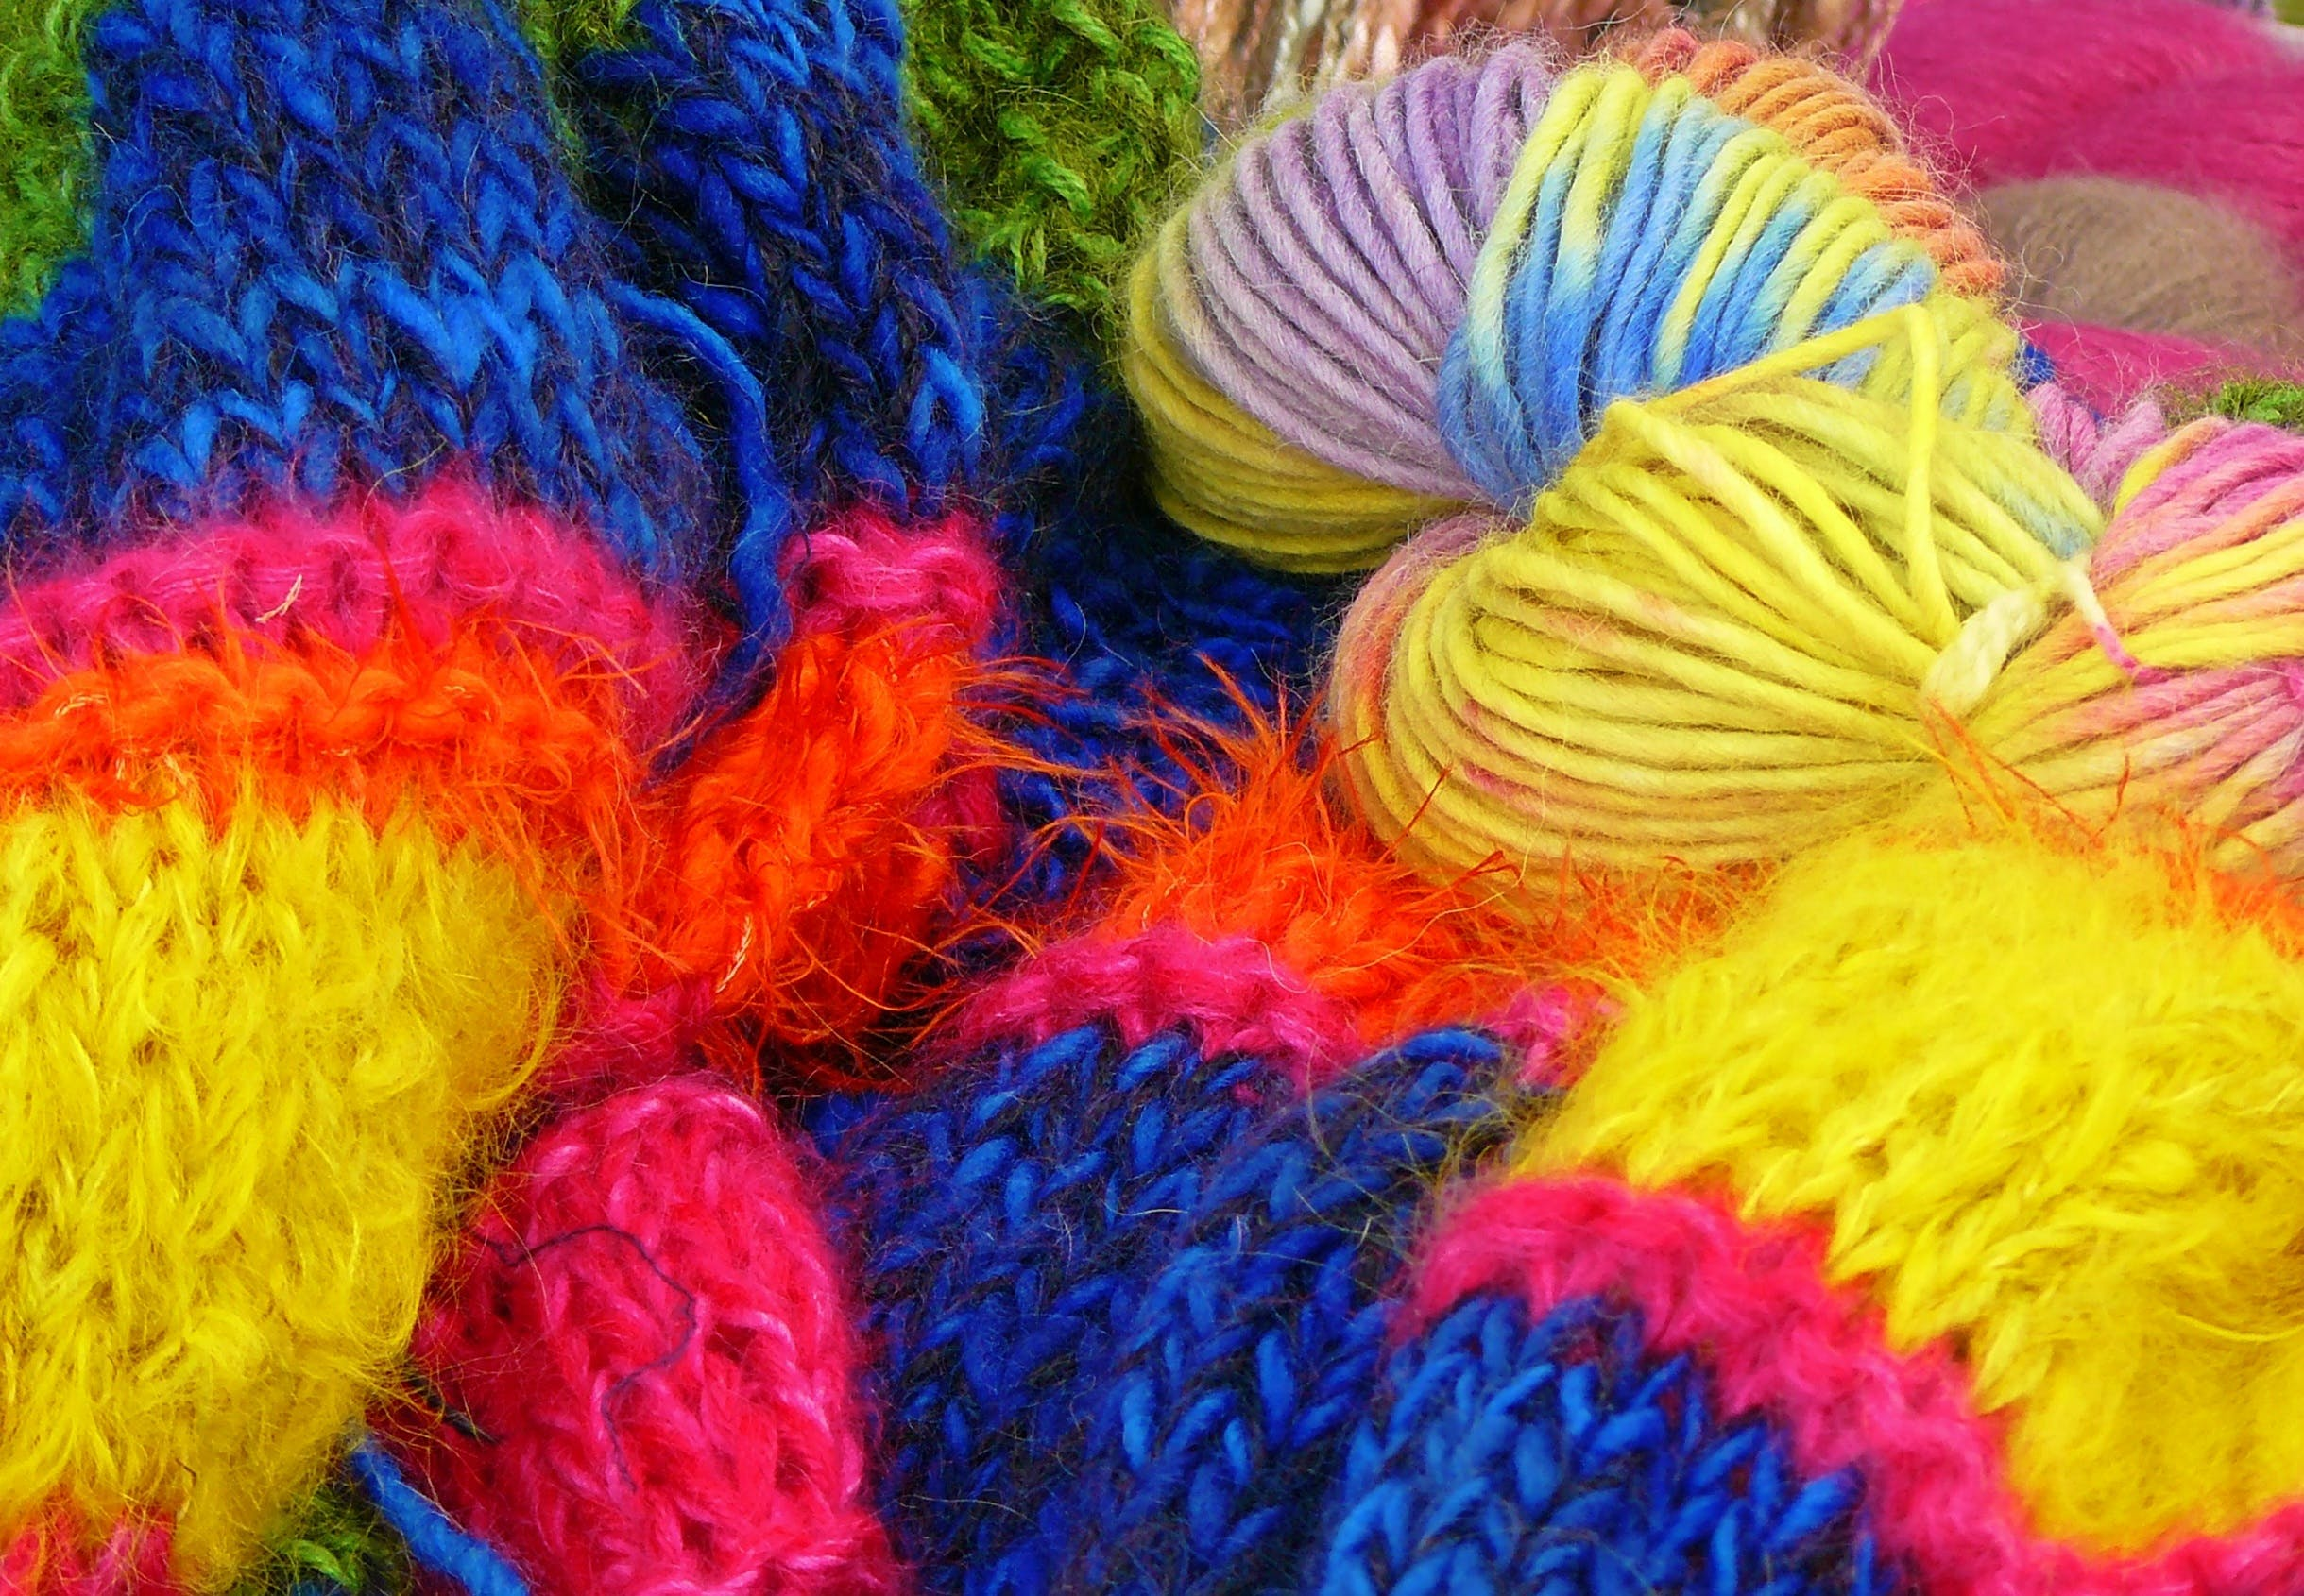 Free stock photo of winter, colorful, knitwear, color